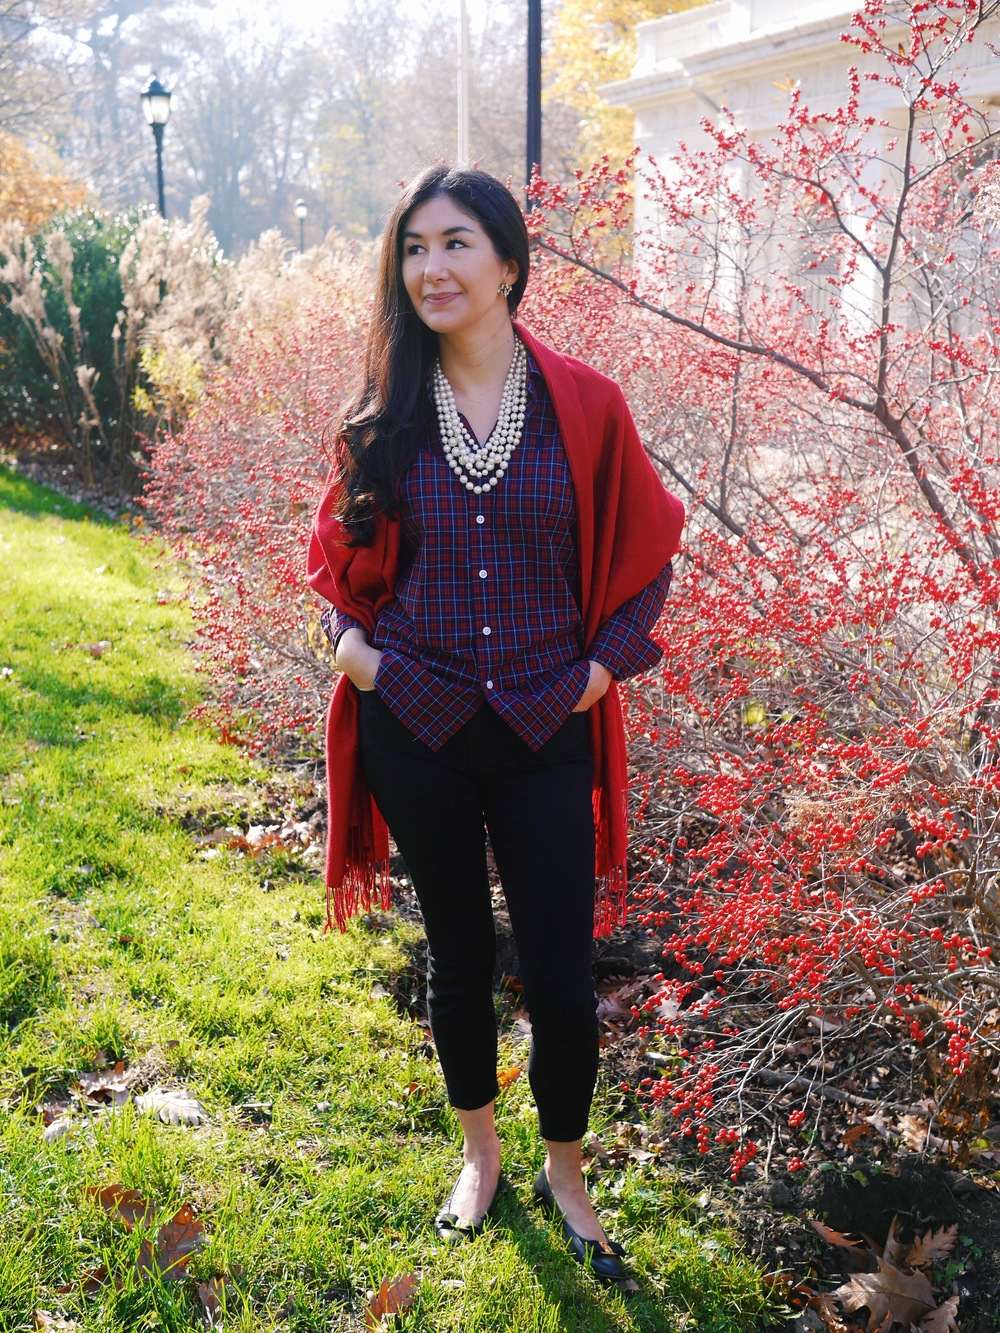 Christmas Outfit Ralph Lauren Plaid Shirt Red Shawl LOFT Black Skinny Jeans J Crew Earrings J Crew Pearl Necklace Salvatore Ferragamo Flats